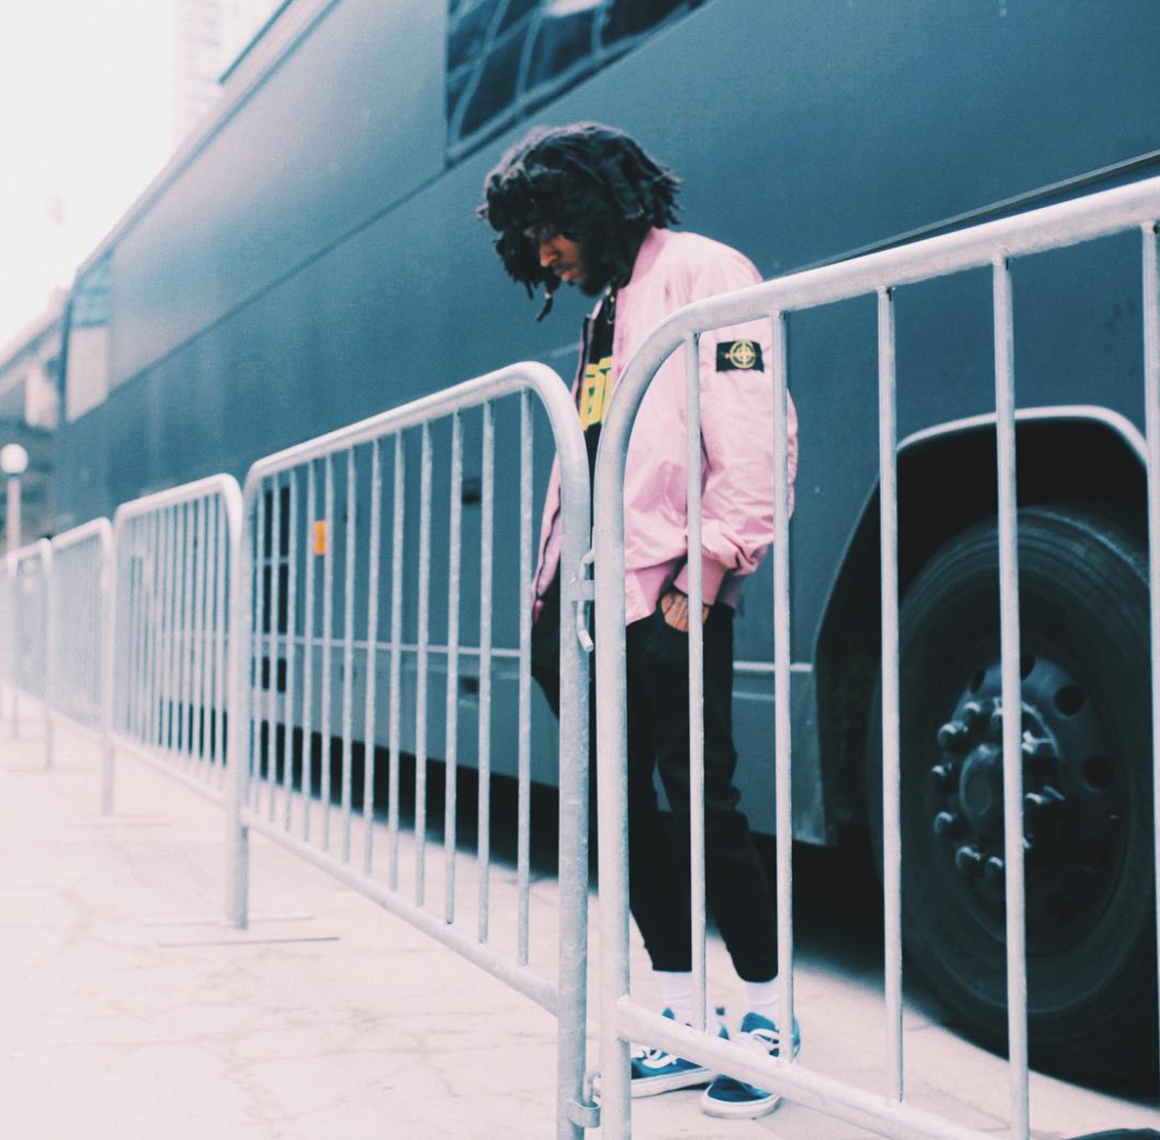 Daily Chiefers 6lack Announces Nationwide Tour On Social Media